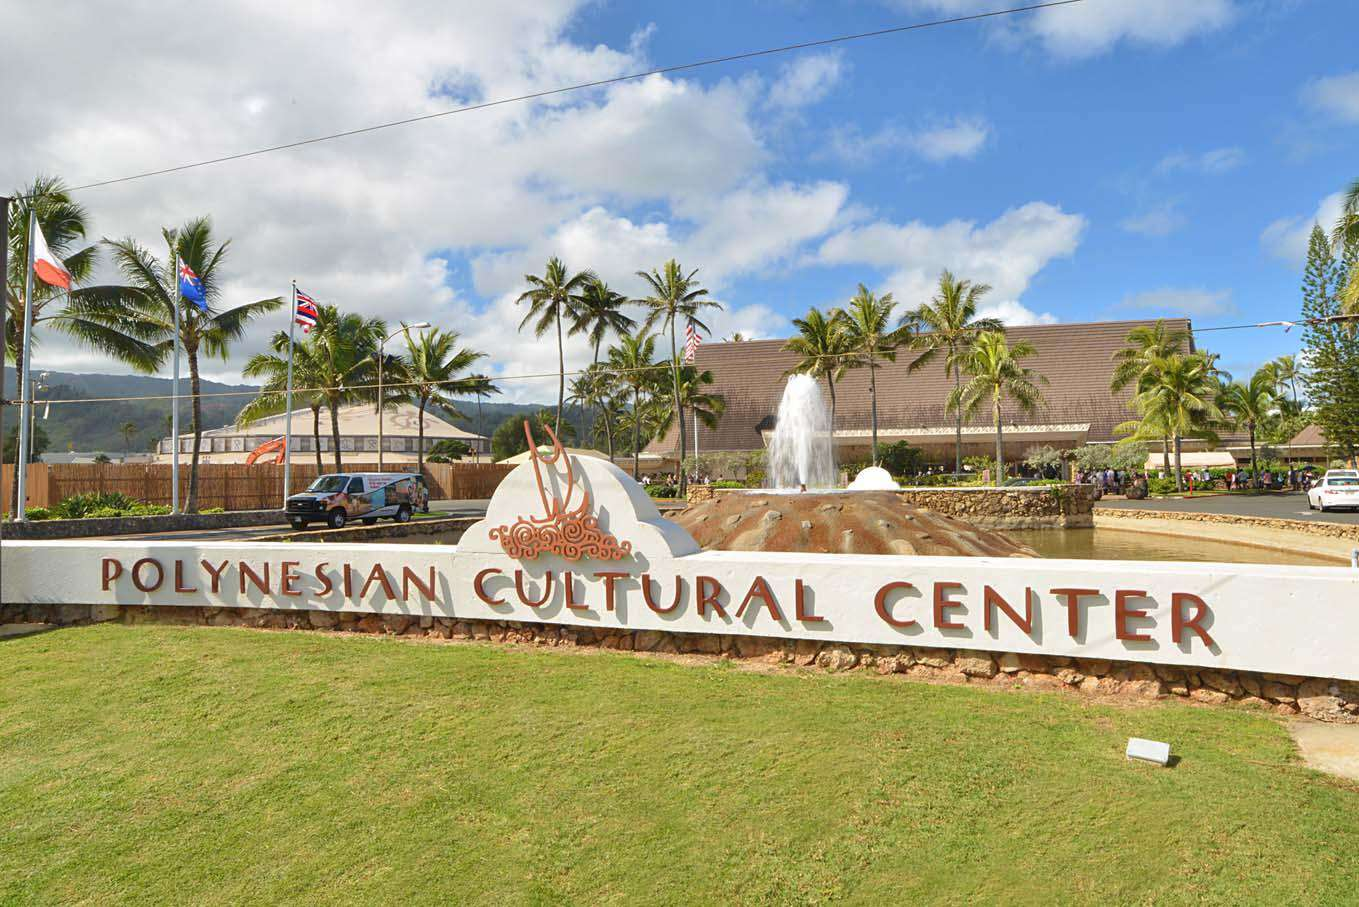 Polynesian Cultural Center is one of the major attractions in all of Hawaii. Walk across the street from you Ocean Sun bungalow.